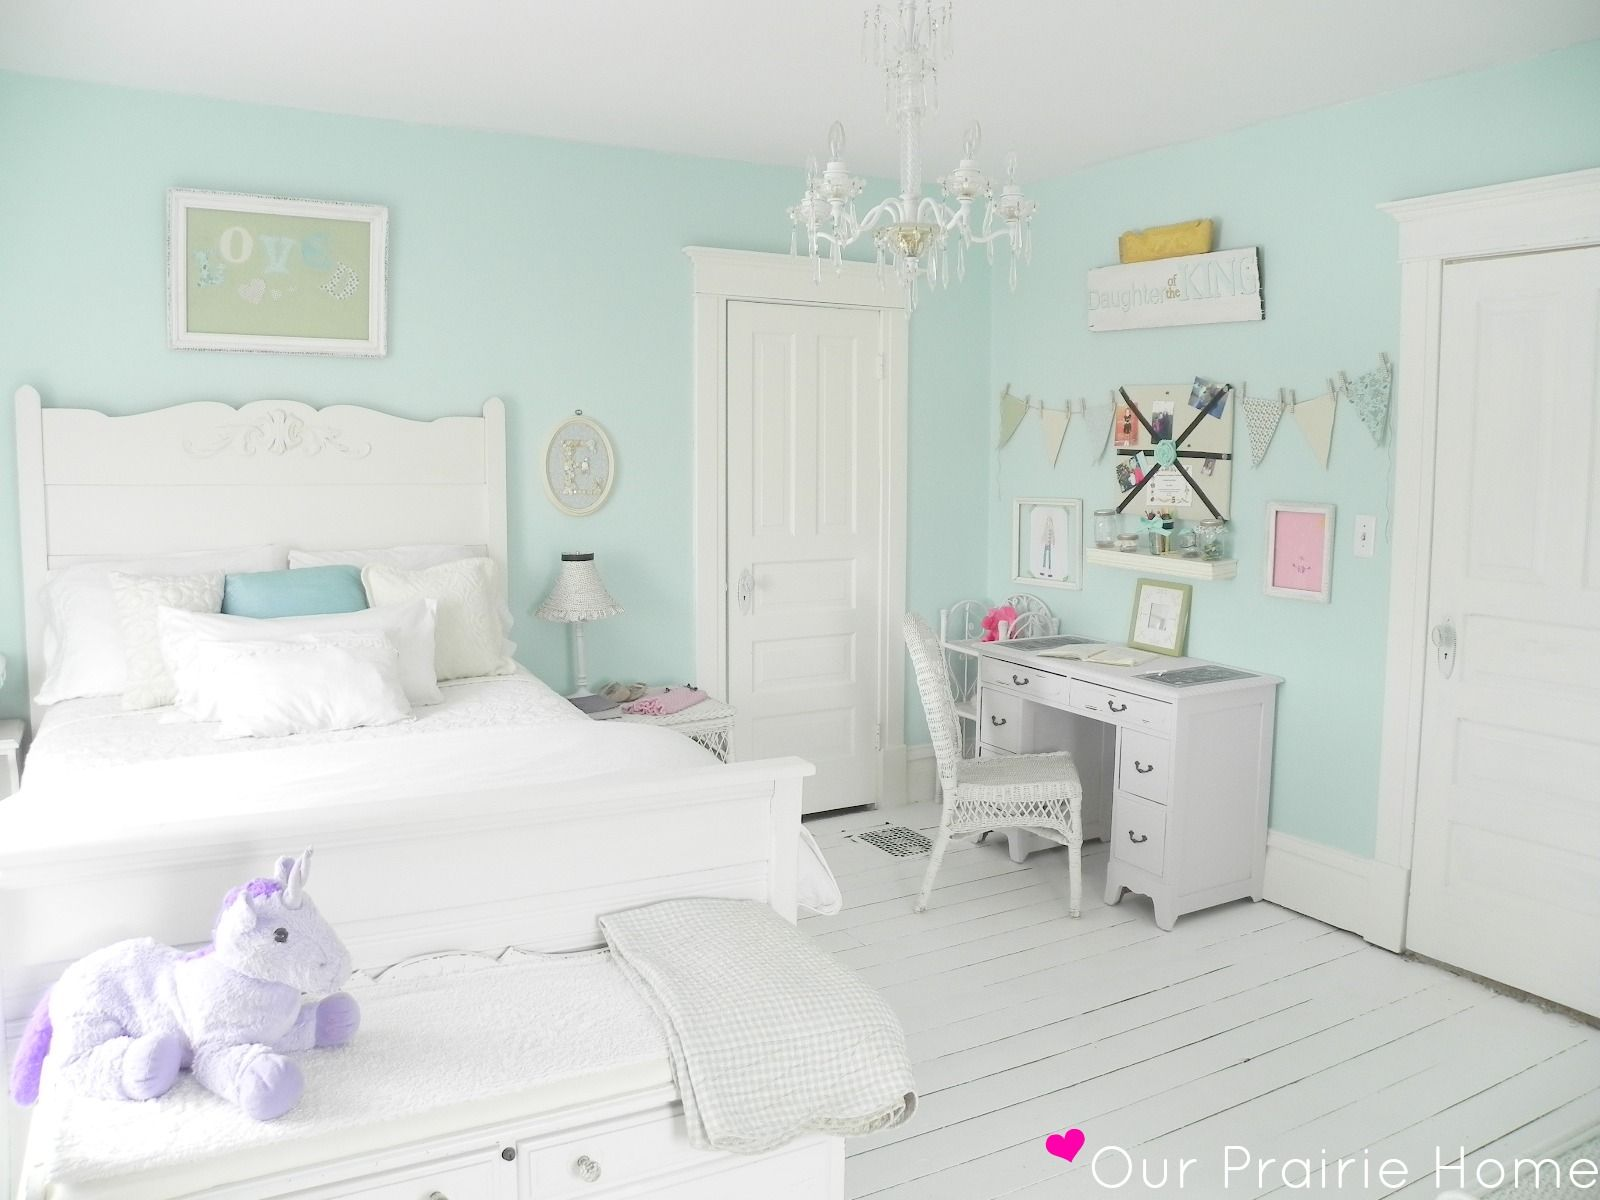 White Bedroom For Girl Mint Girl 39s Room I Want To Do C 39s Room With White Washed